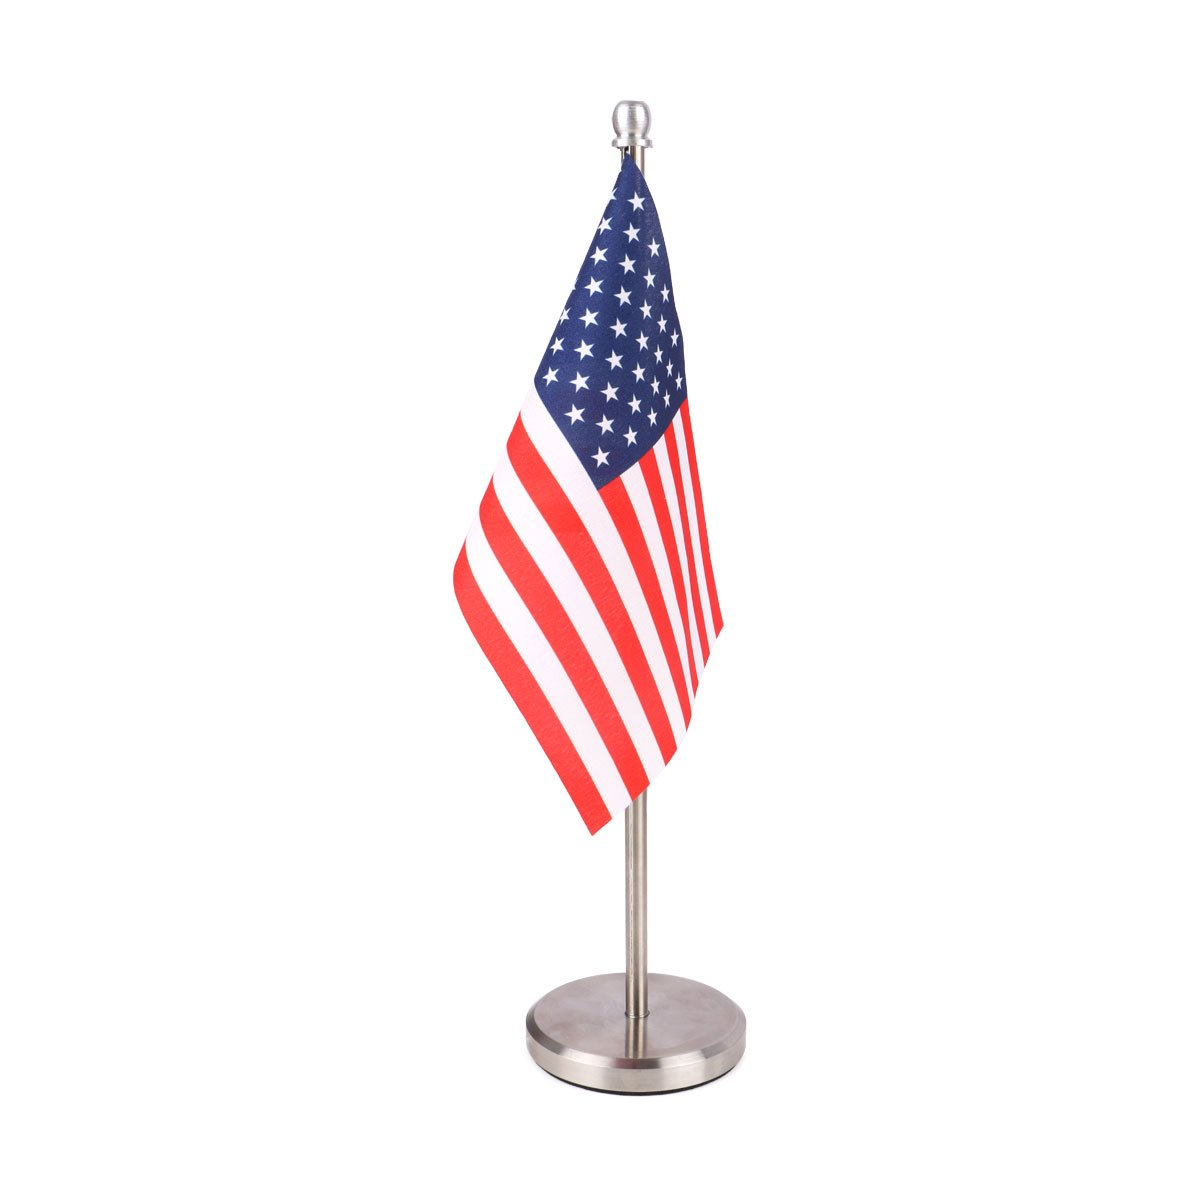 USA Miniature Table Flag with A Graceful Stainless Steel Base